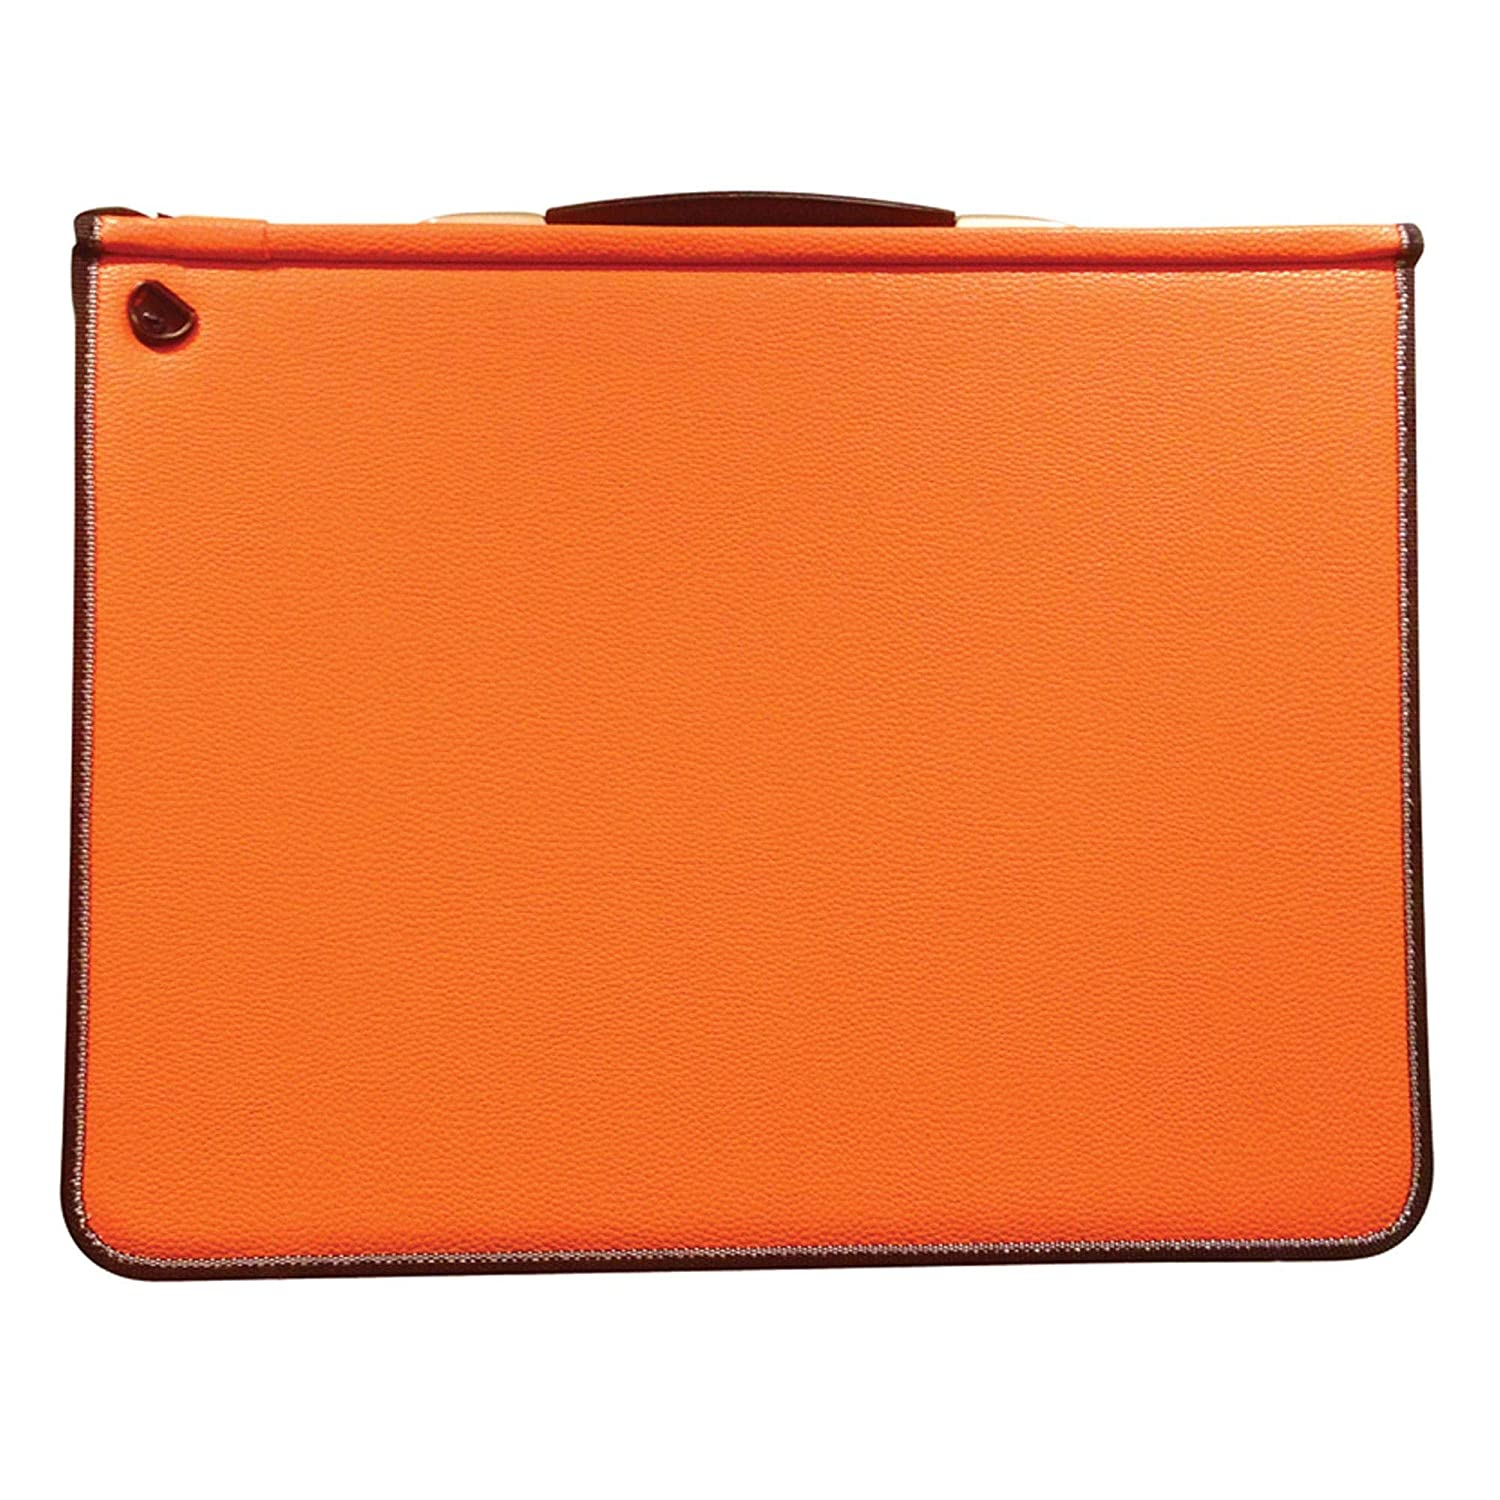 Artcare 15483310 46 x 5 x 36 cm A3 Synthetic Material Premier Portfolio with 5 Free Sleeves, Sunset Orange Mapac